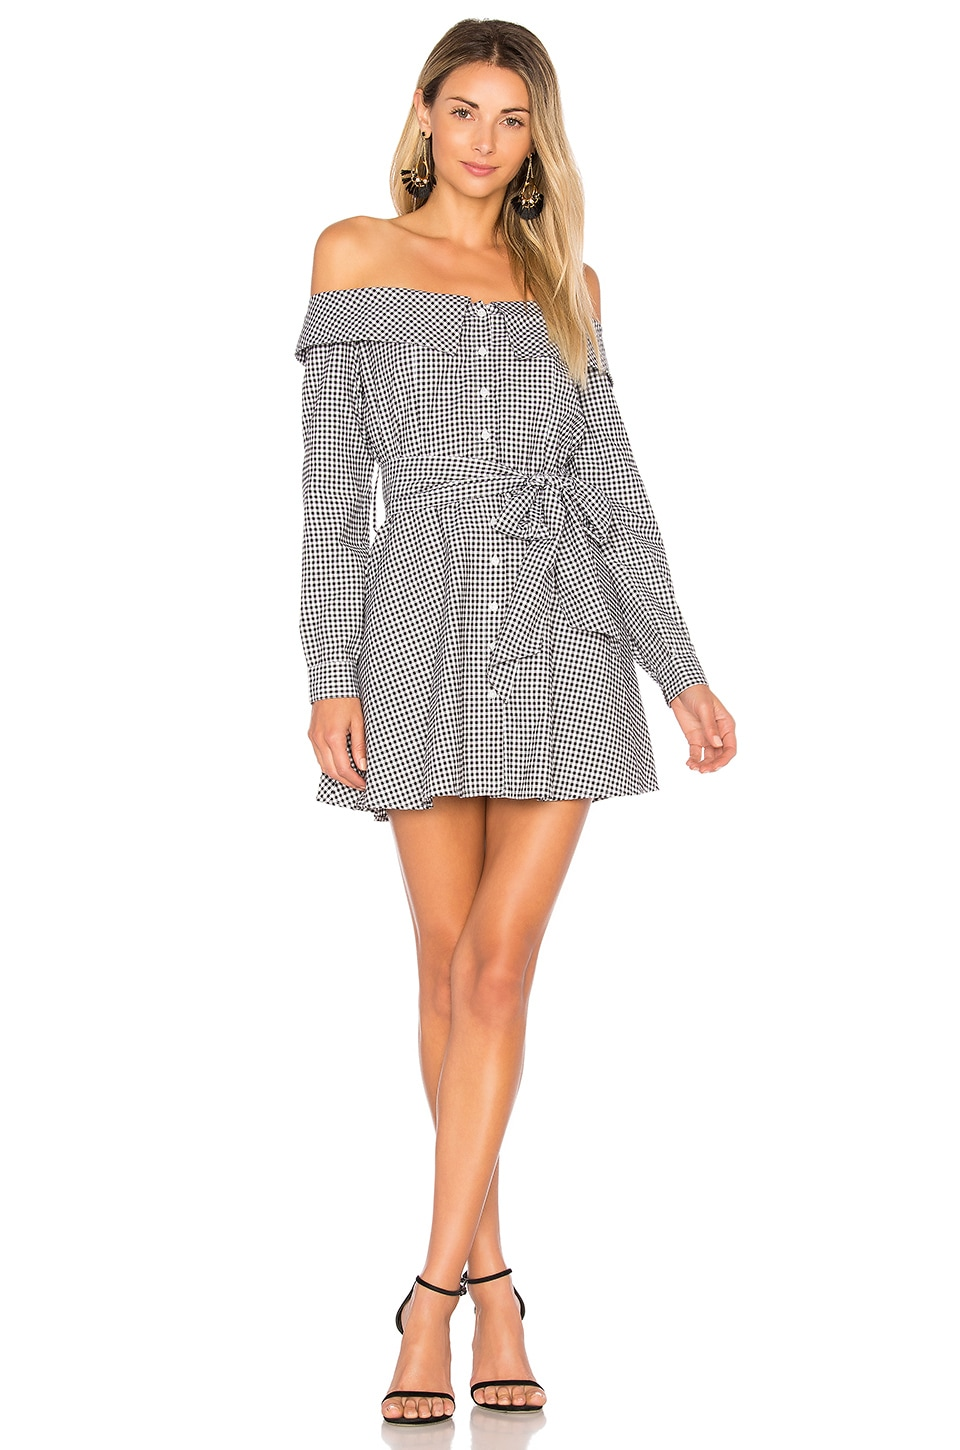 L'Academie Jann Button Up Dress in Black & White Gingham